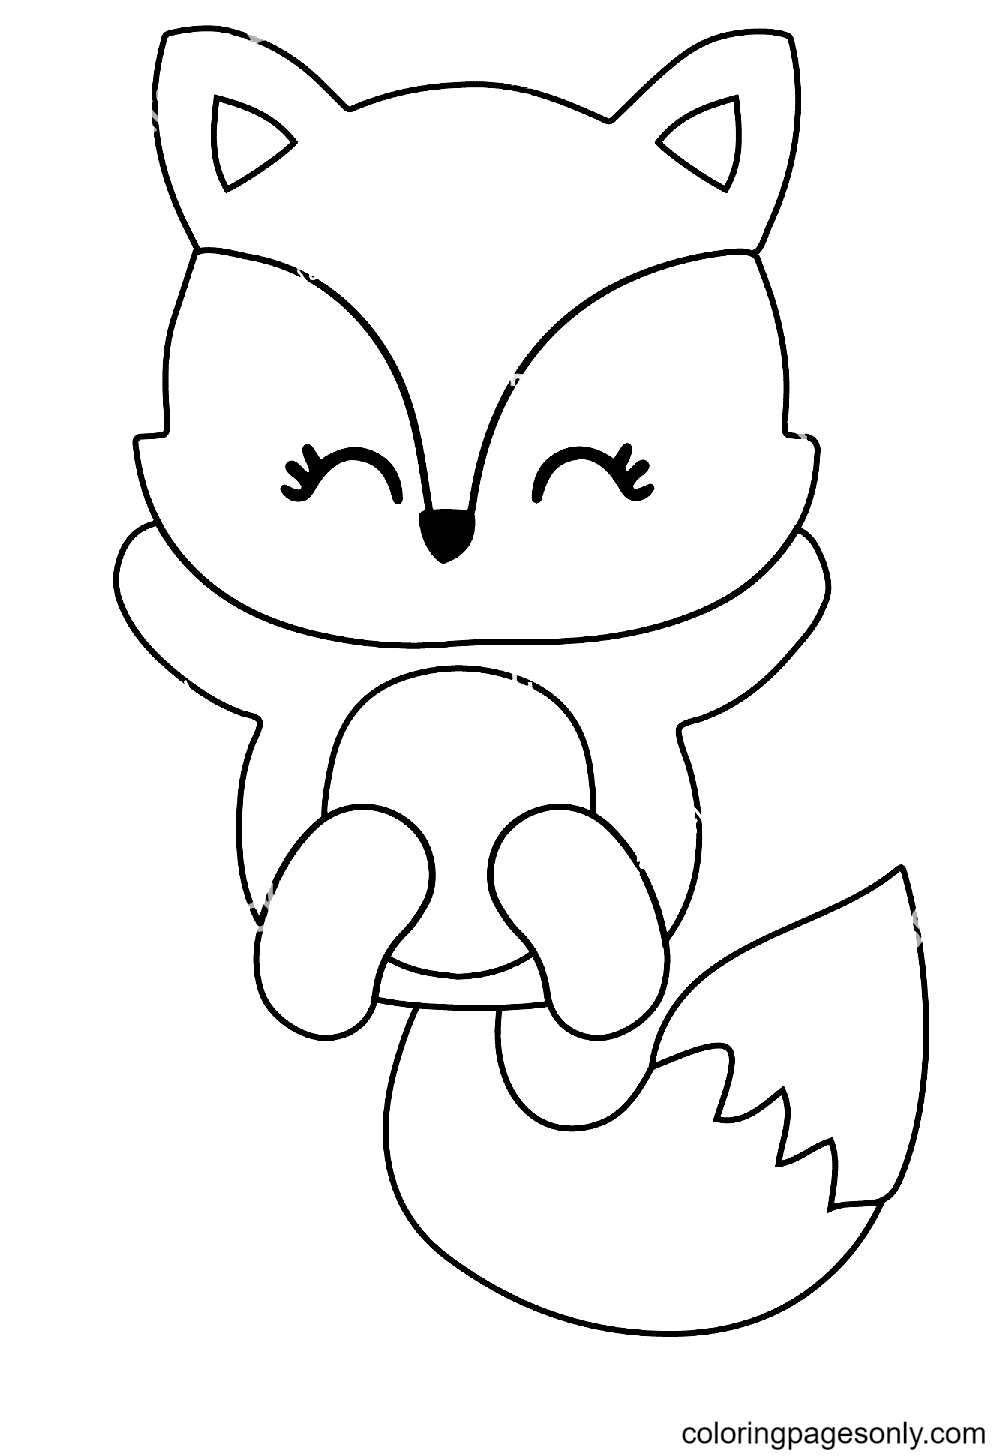 Fox Cute Coloring Page